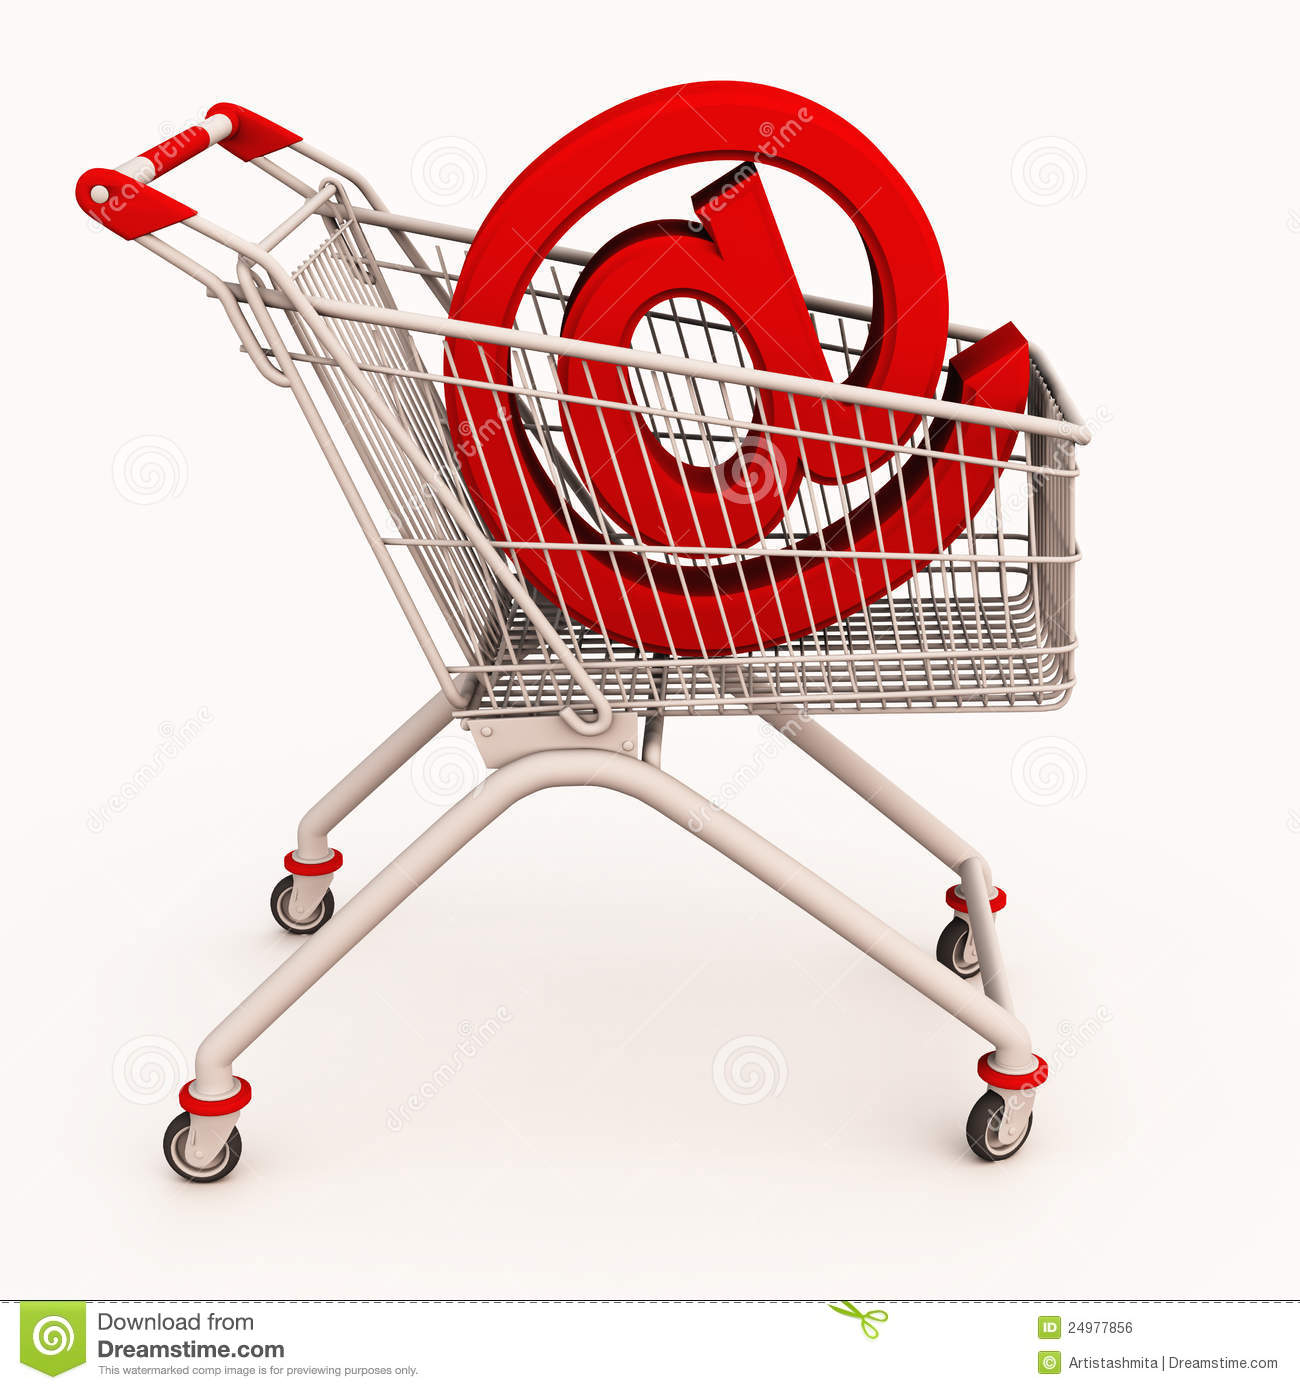 Royalty Free Photos Online Online shopping cart